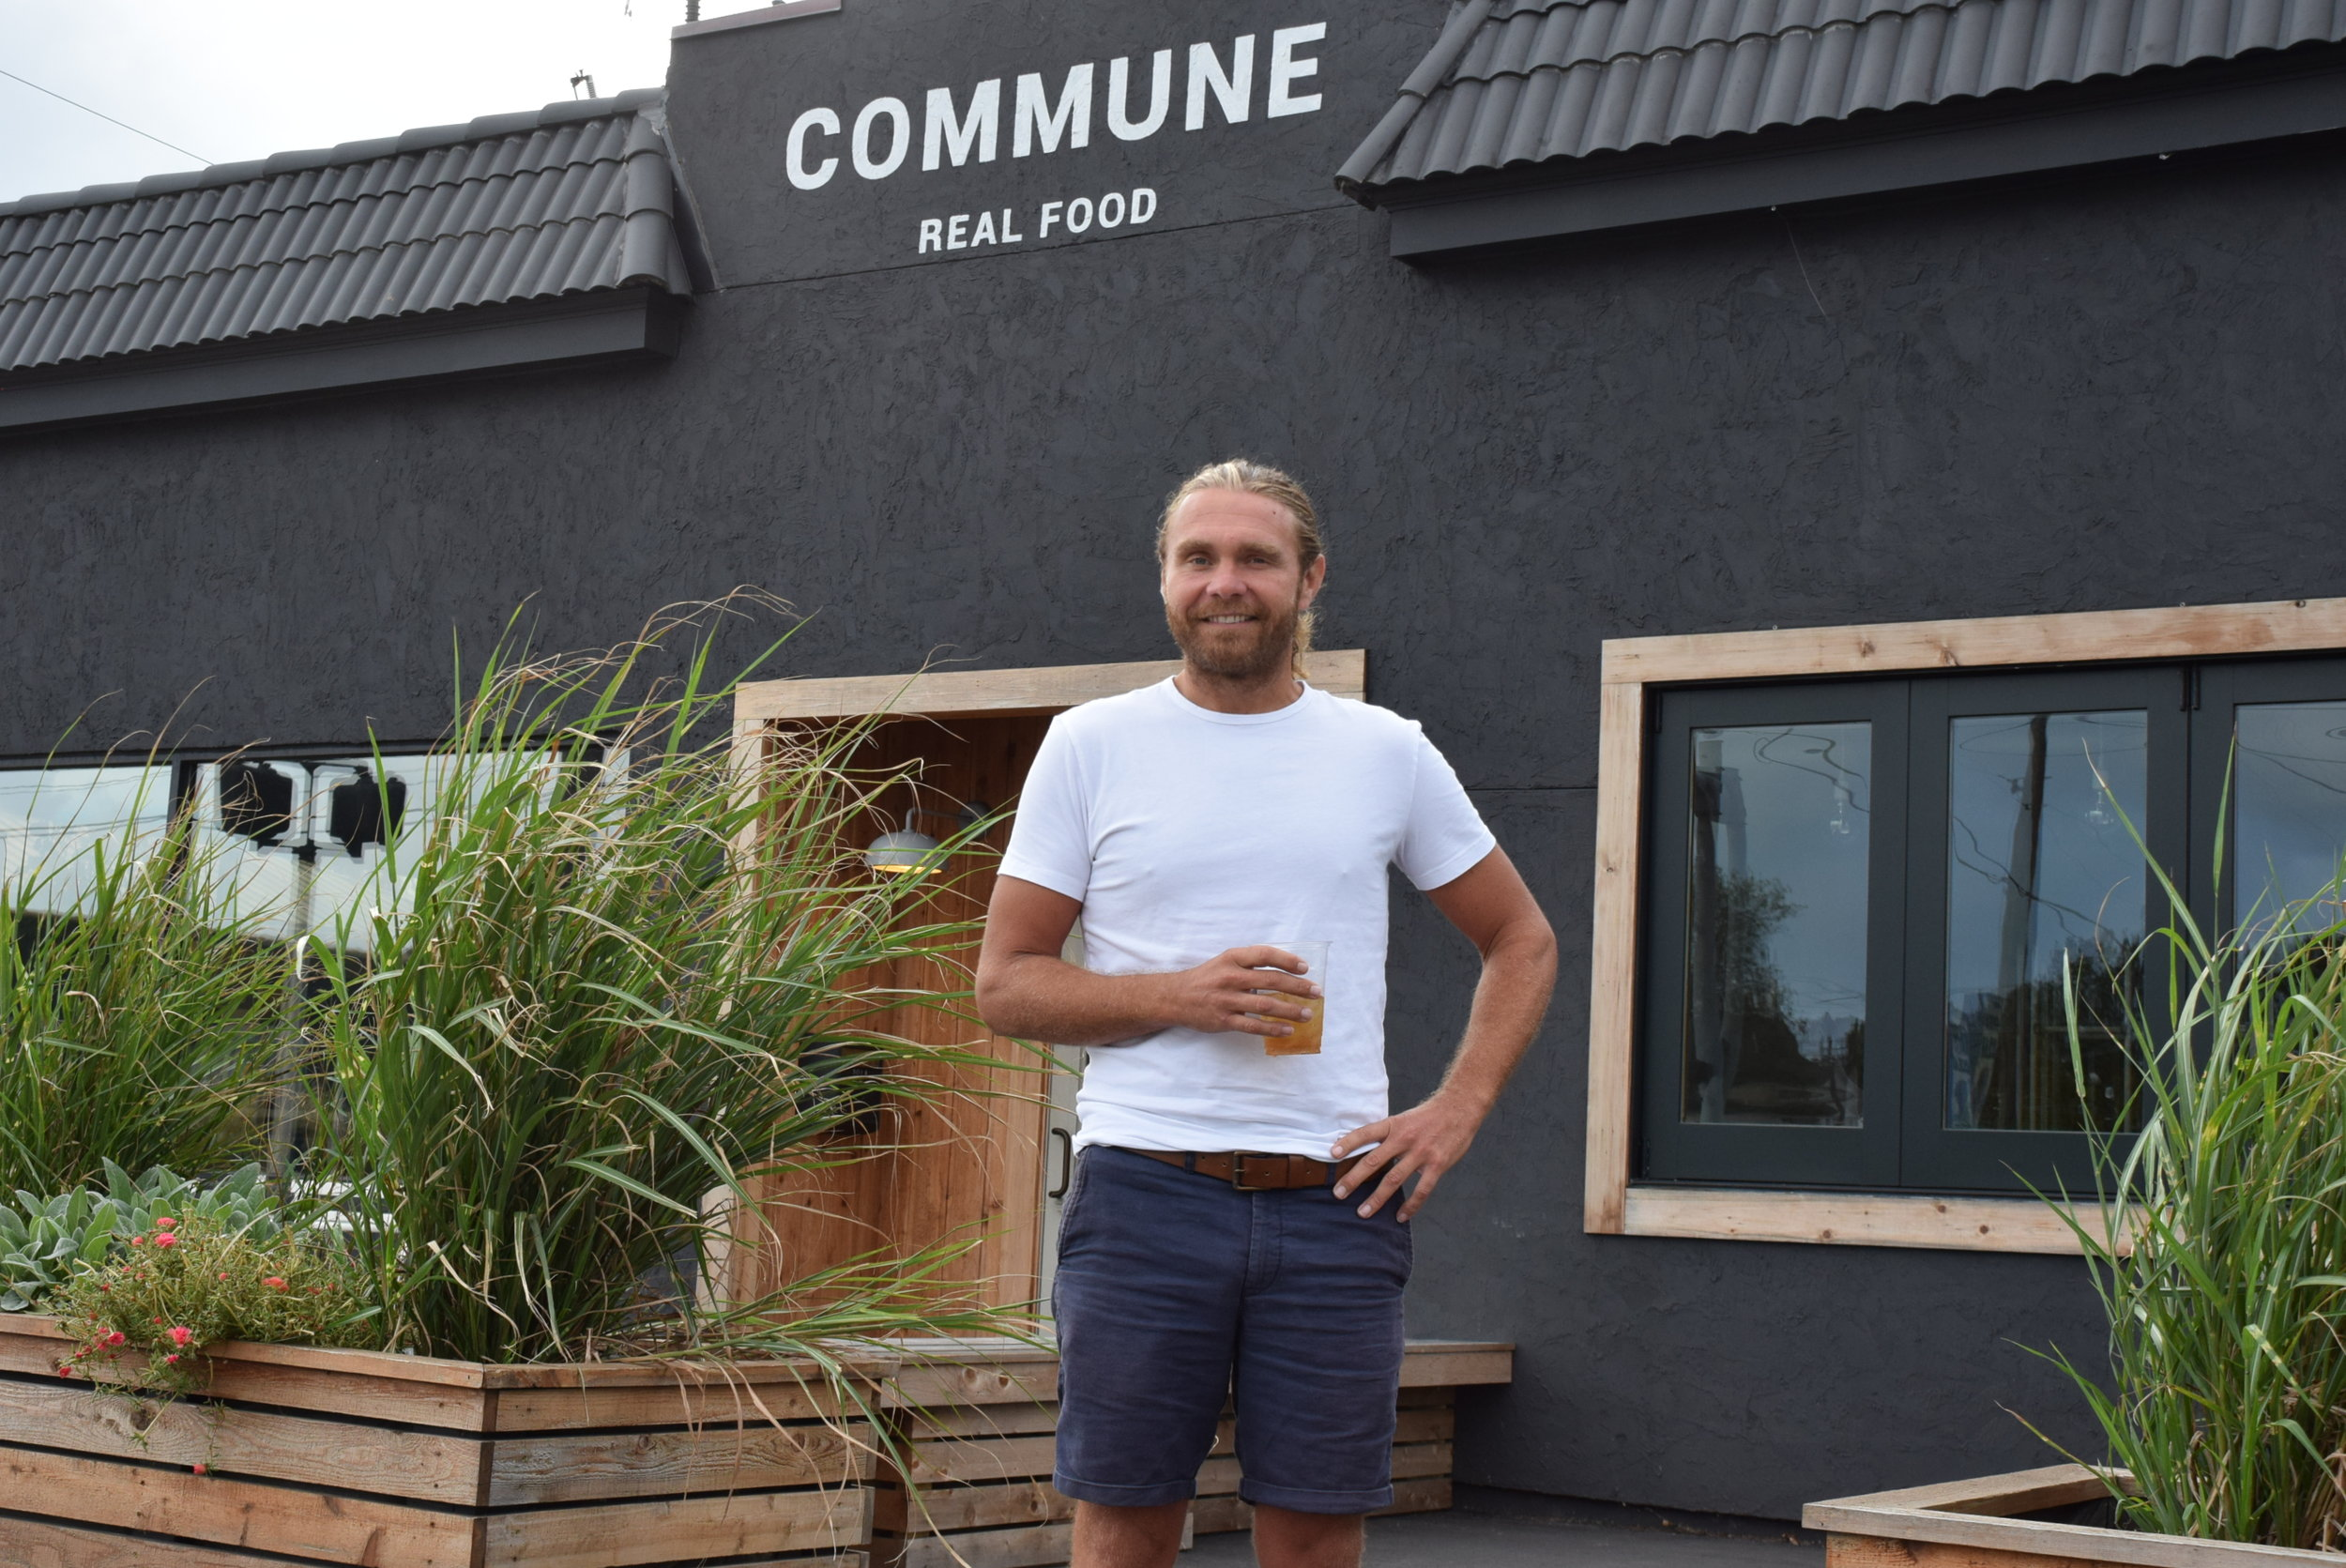 commune - Commune is a vertically integrated farm-to-table restaurant with locations in Virginia Beach and Norfolk. The business is owned by local food trailblazer, Kevin Jamison. He opened the Virginia Beach location in 2015 and since then the business has grown to include two restaurants, a bakery, a 21-acre organic farm nearby and an events business. Commune has a reputation for its high level of commitment to sourcing seasonal ingredients from local farms and suppliers. The business received a 0% SOIL loan in September 2019 to make some modifications to their kitchen that will greatly improve operations. Read more about Commune and their SOIL loan.